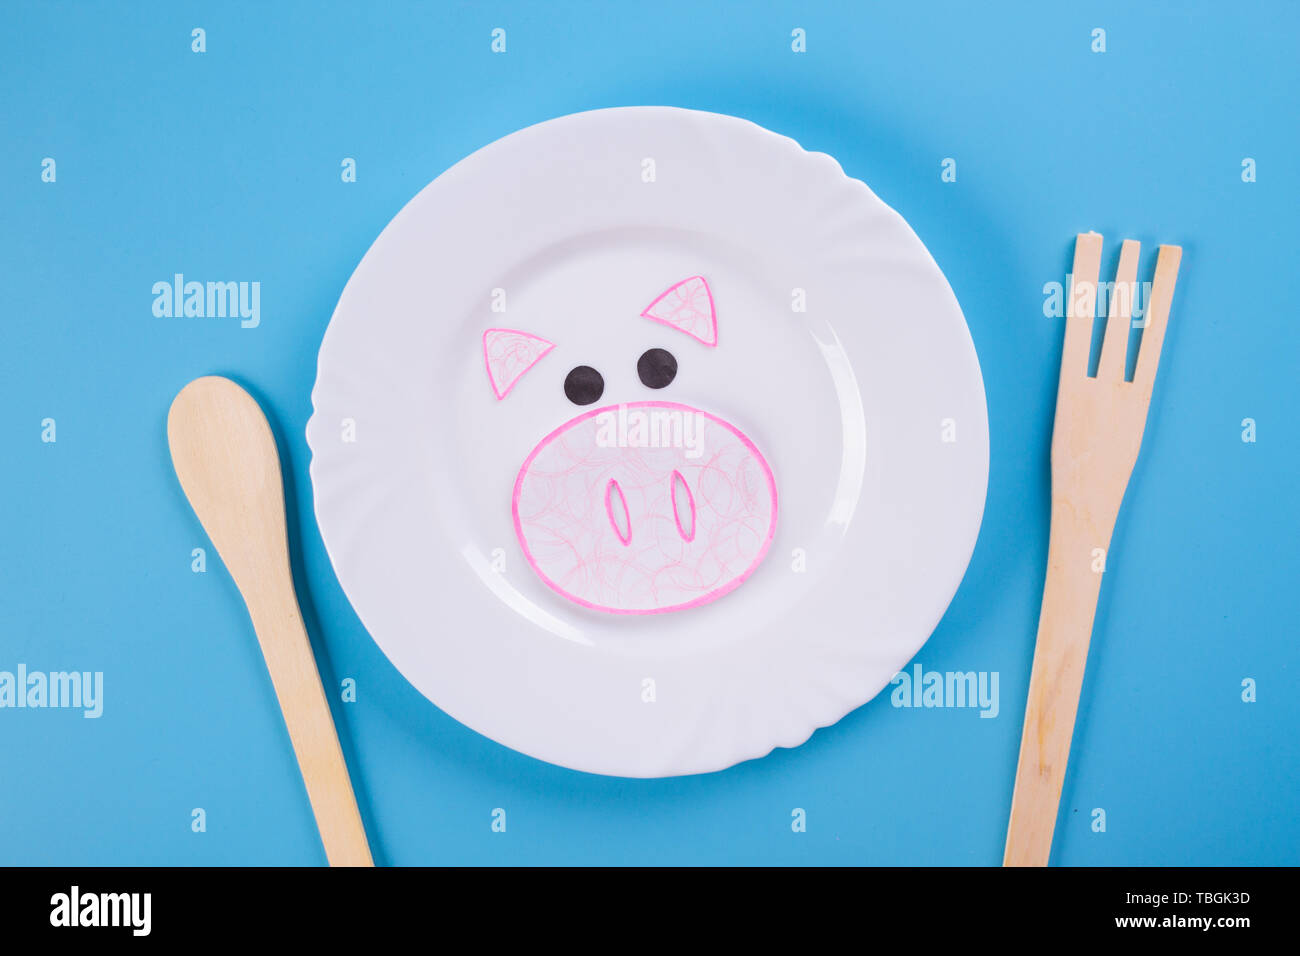 pork meat on the plate. cartoon styled - Stock Image